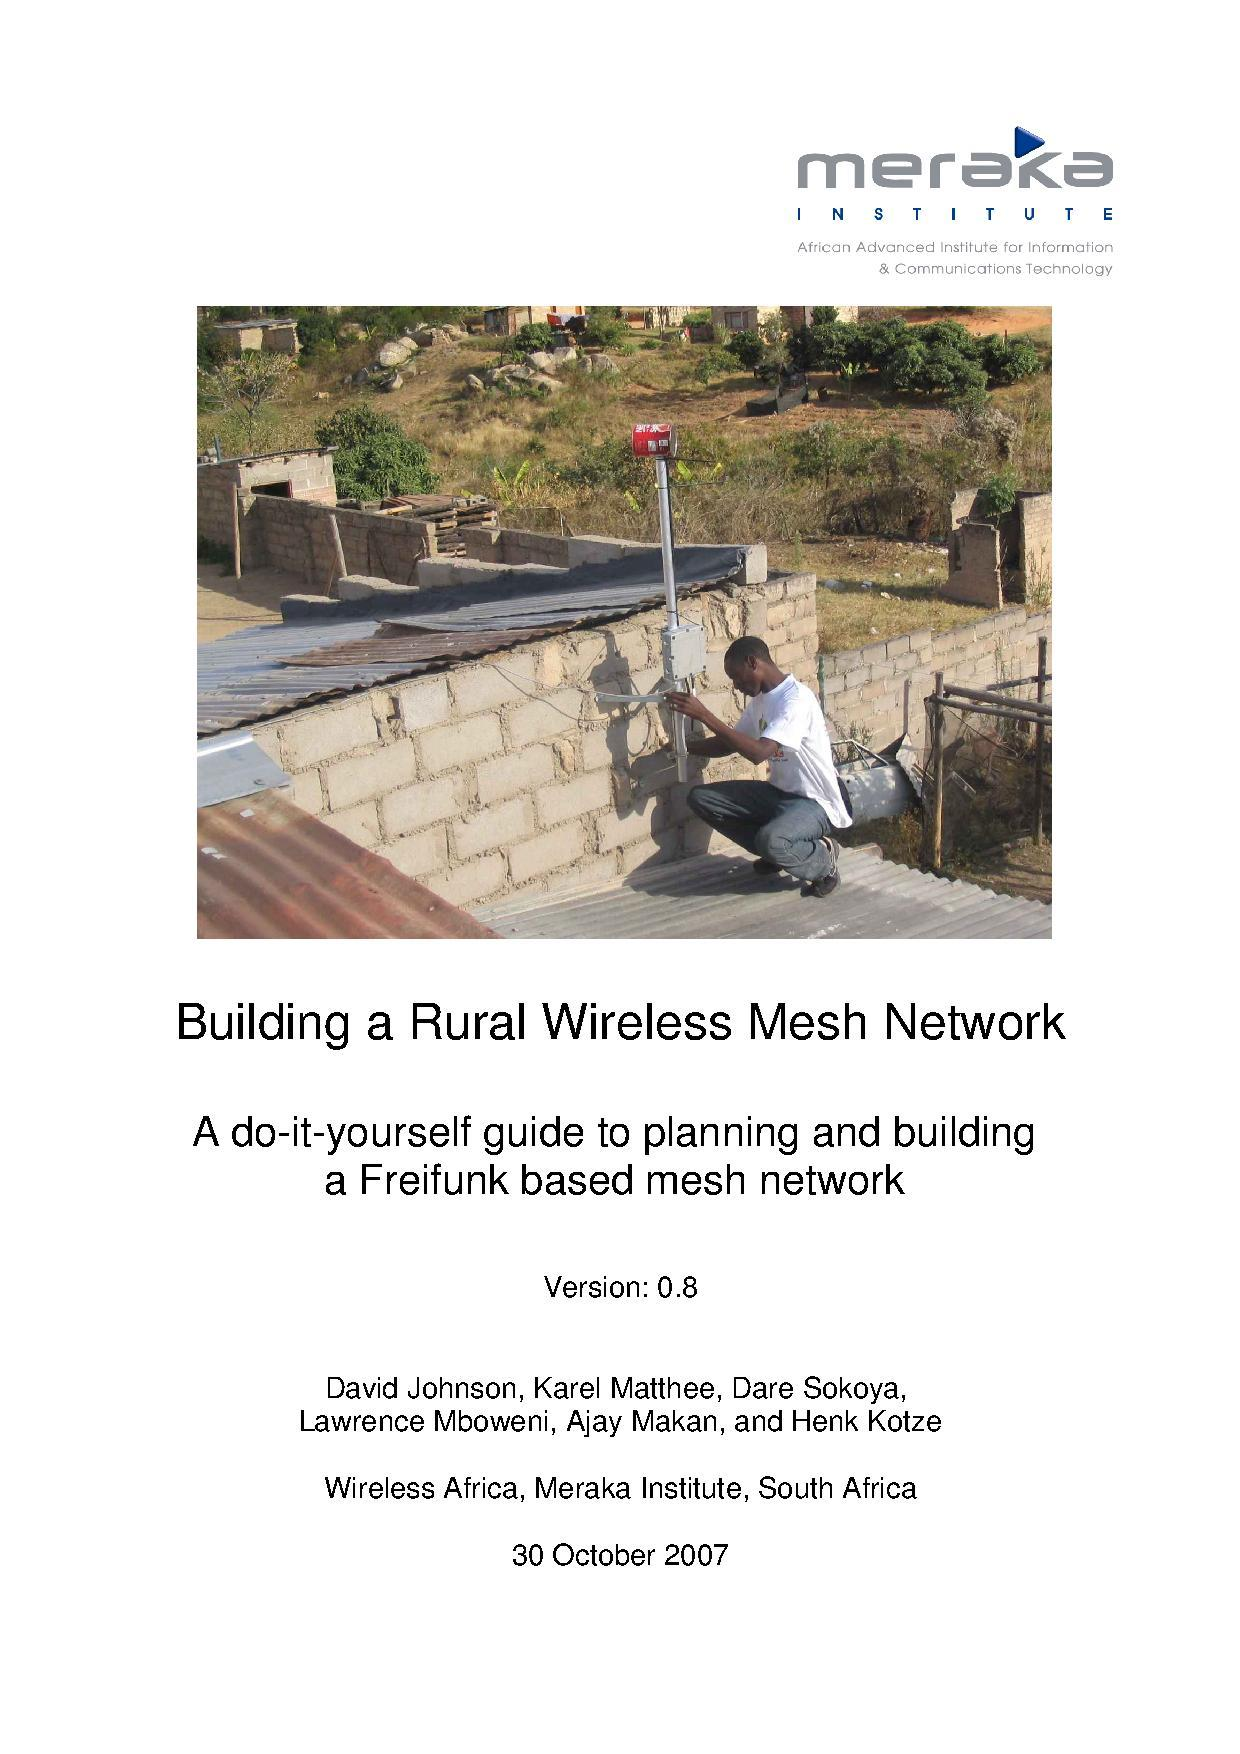 Filebuilding a rural wireless mesh network a diy guide v08pdf filebuilding a rural wireless mesh network a diy guide v08pdf solutioingenieria Images